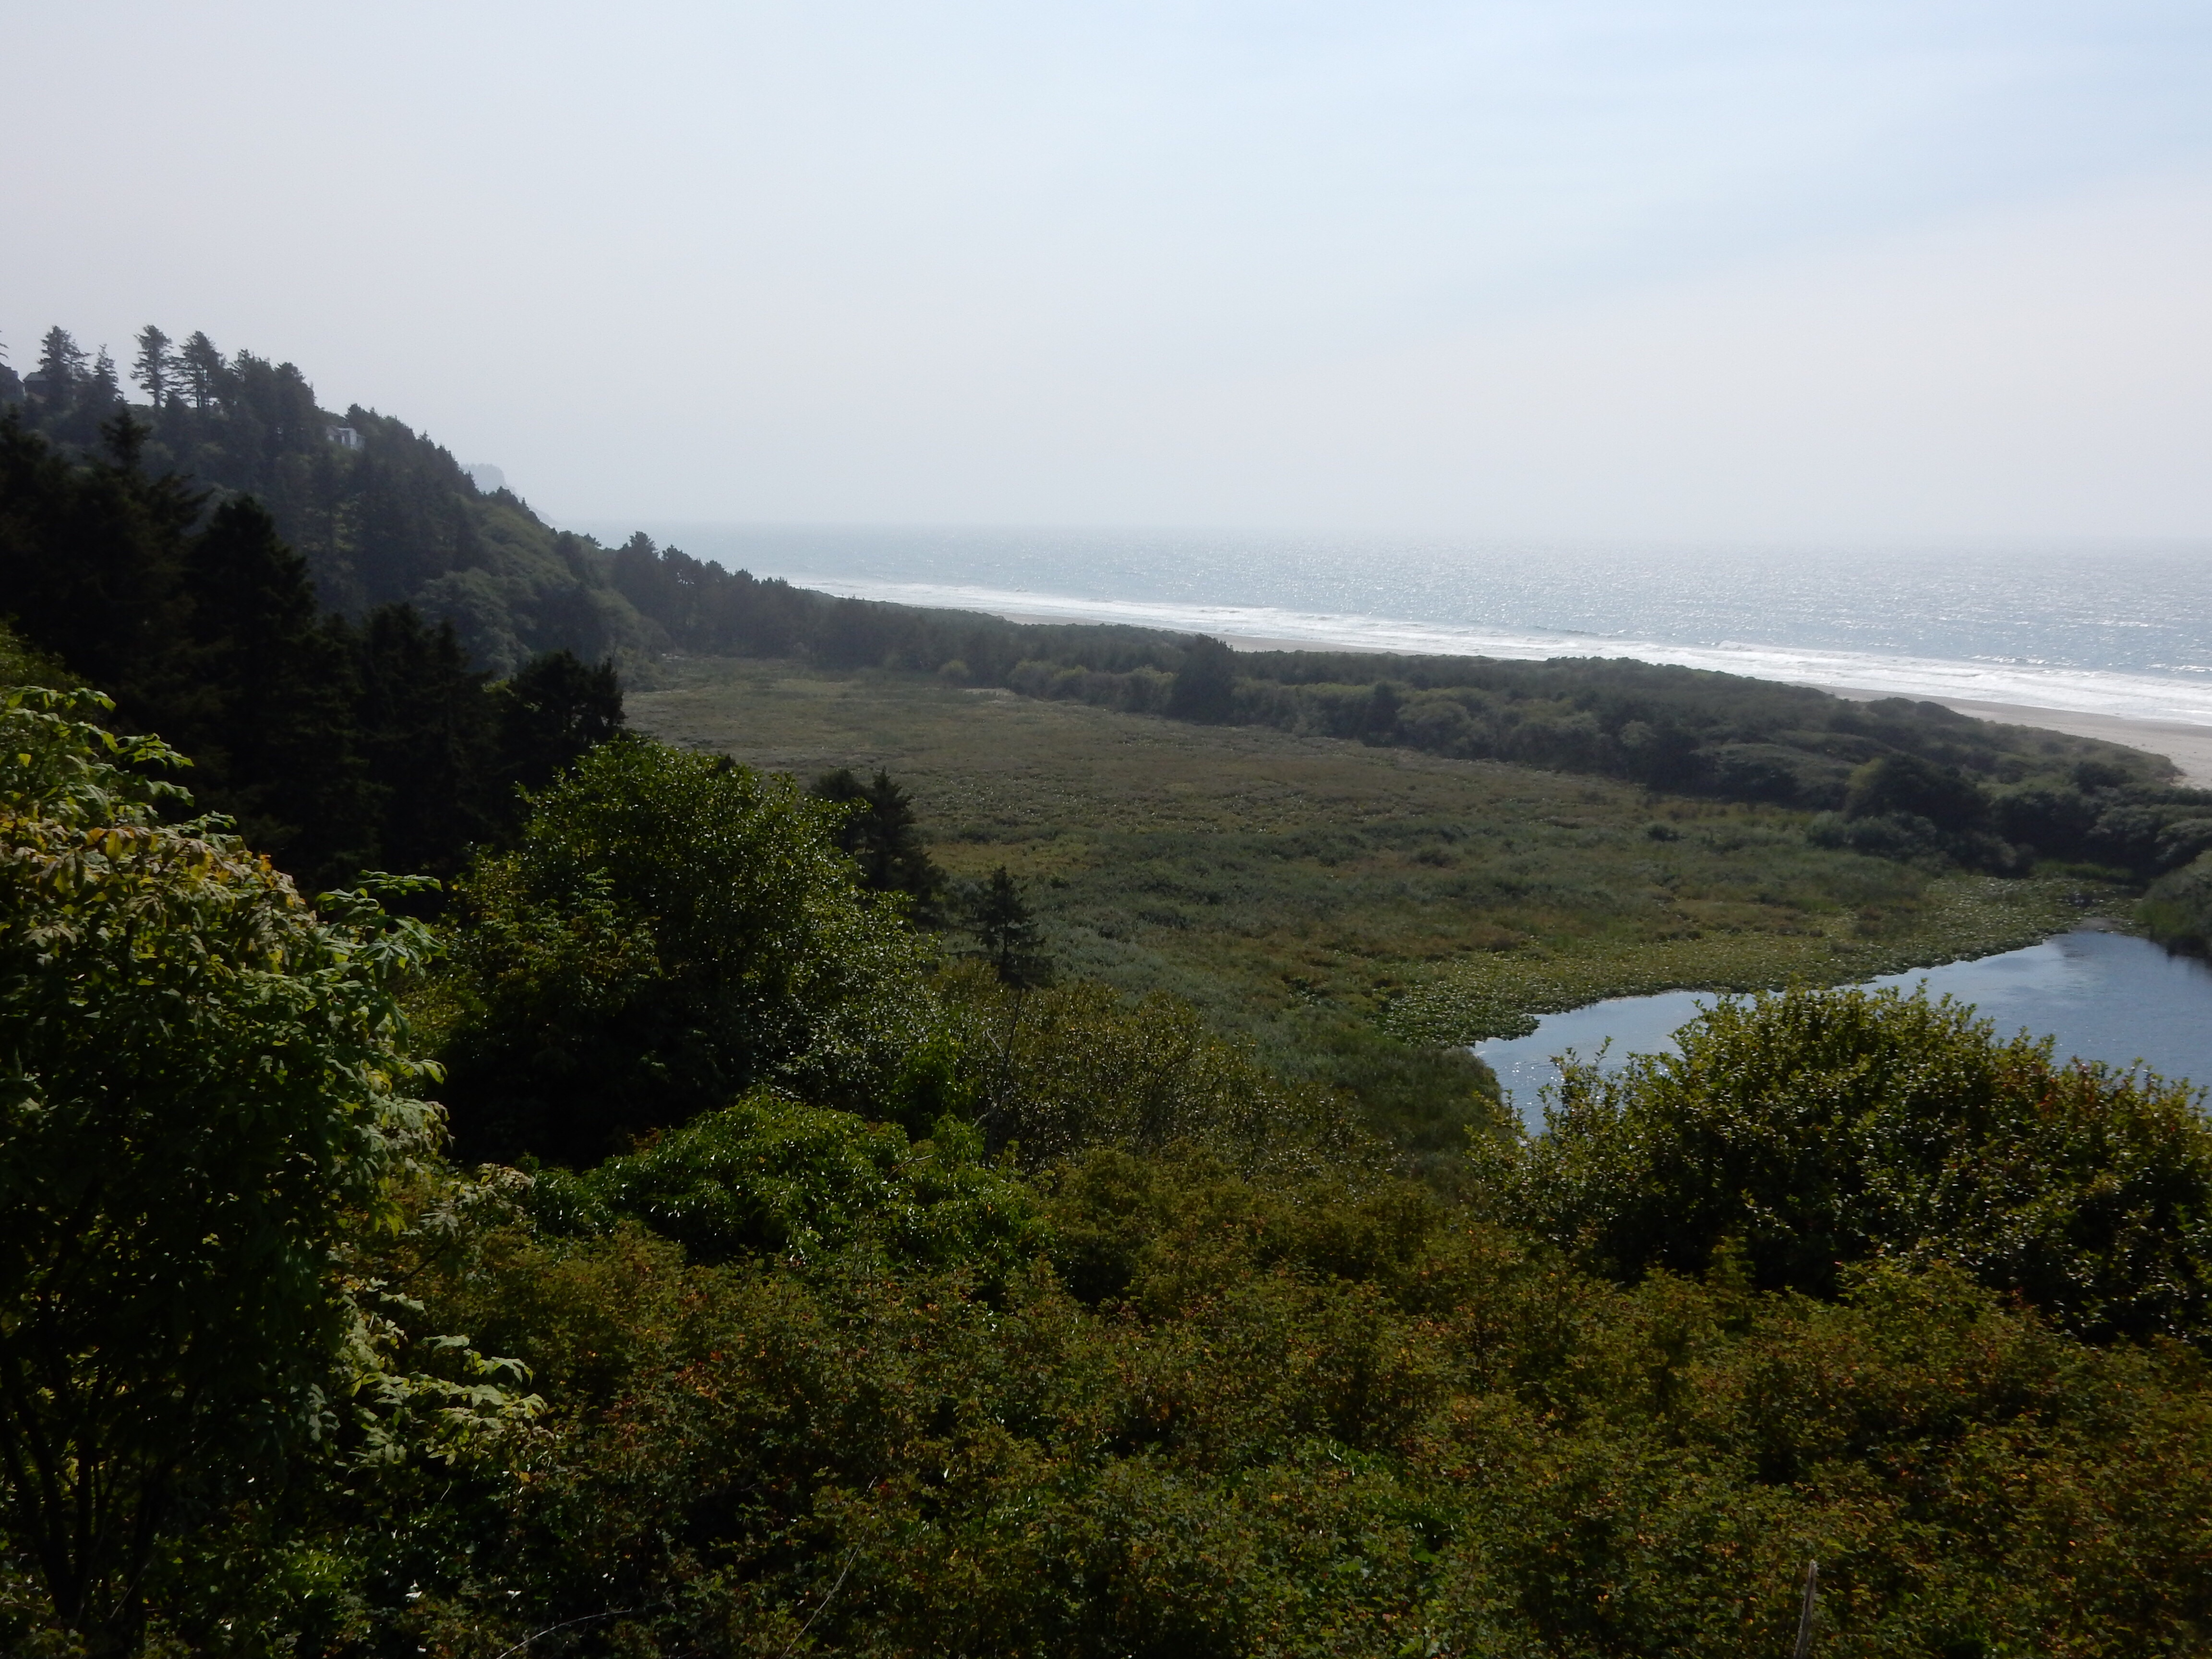 A view south along the coast from an overlook at Winema Lake.